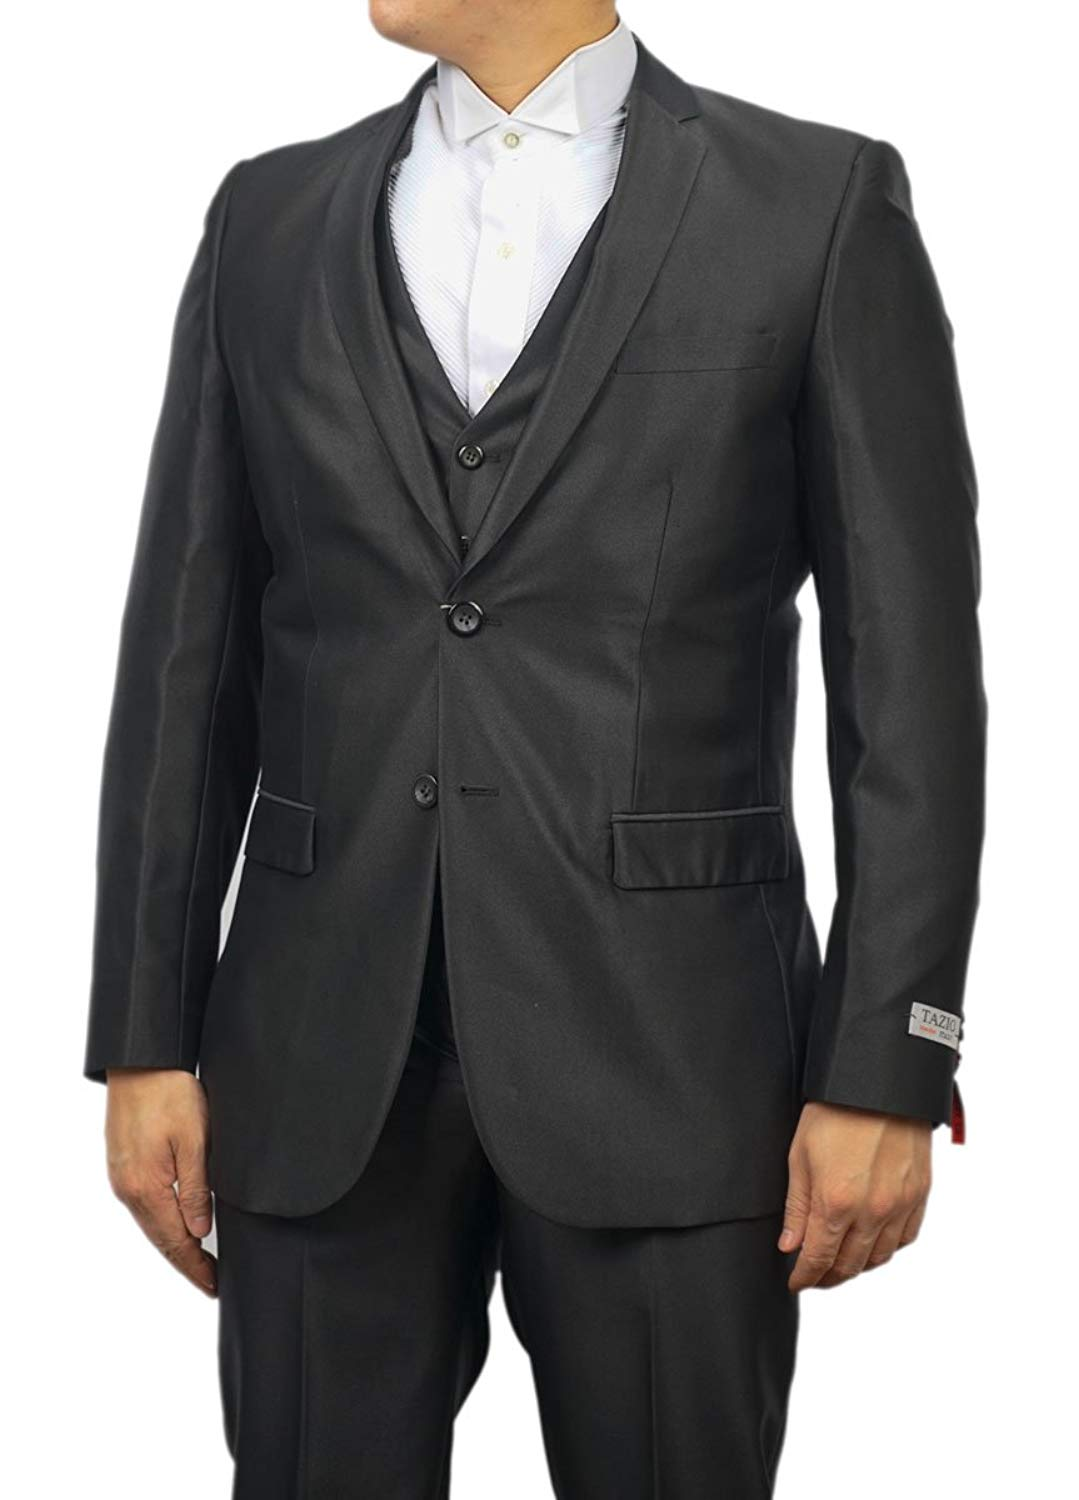 TAZIO New Mens 3 Pc (Jacket, Pants & Vest) Shiny Gray Sharkskin Slim Fit Dress Suit (50L)